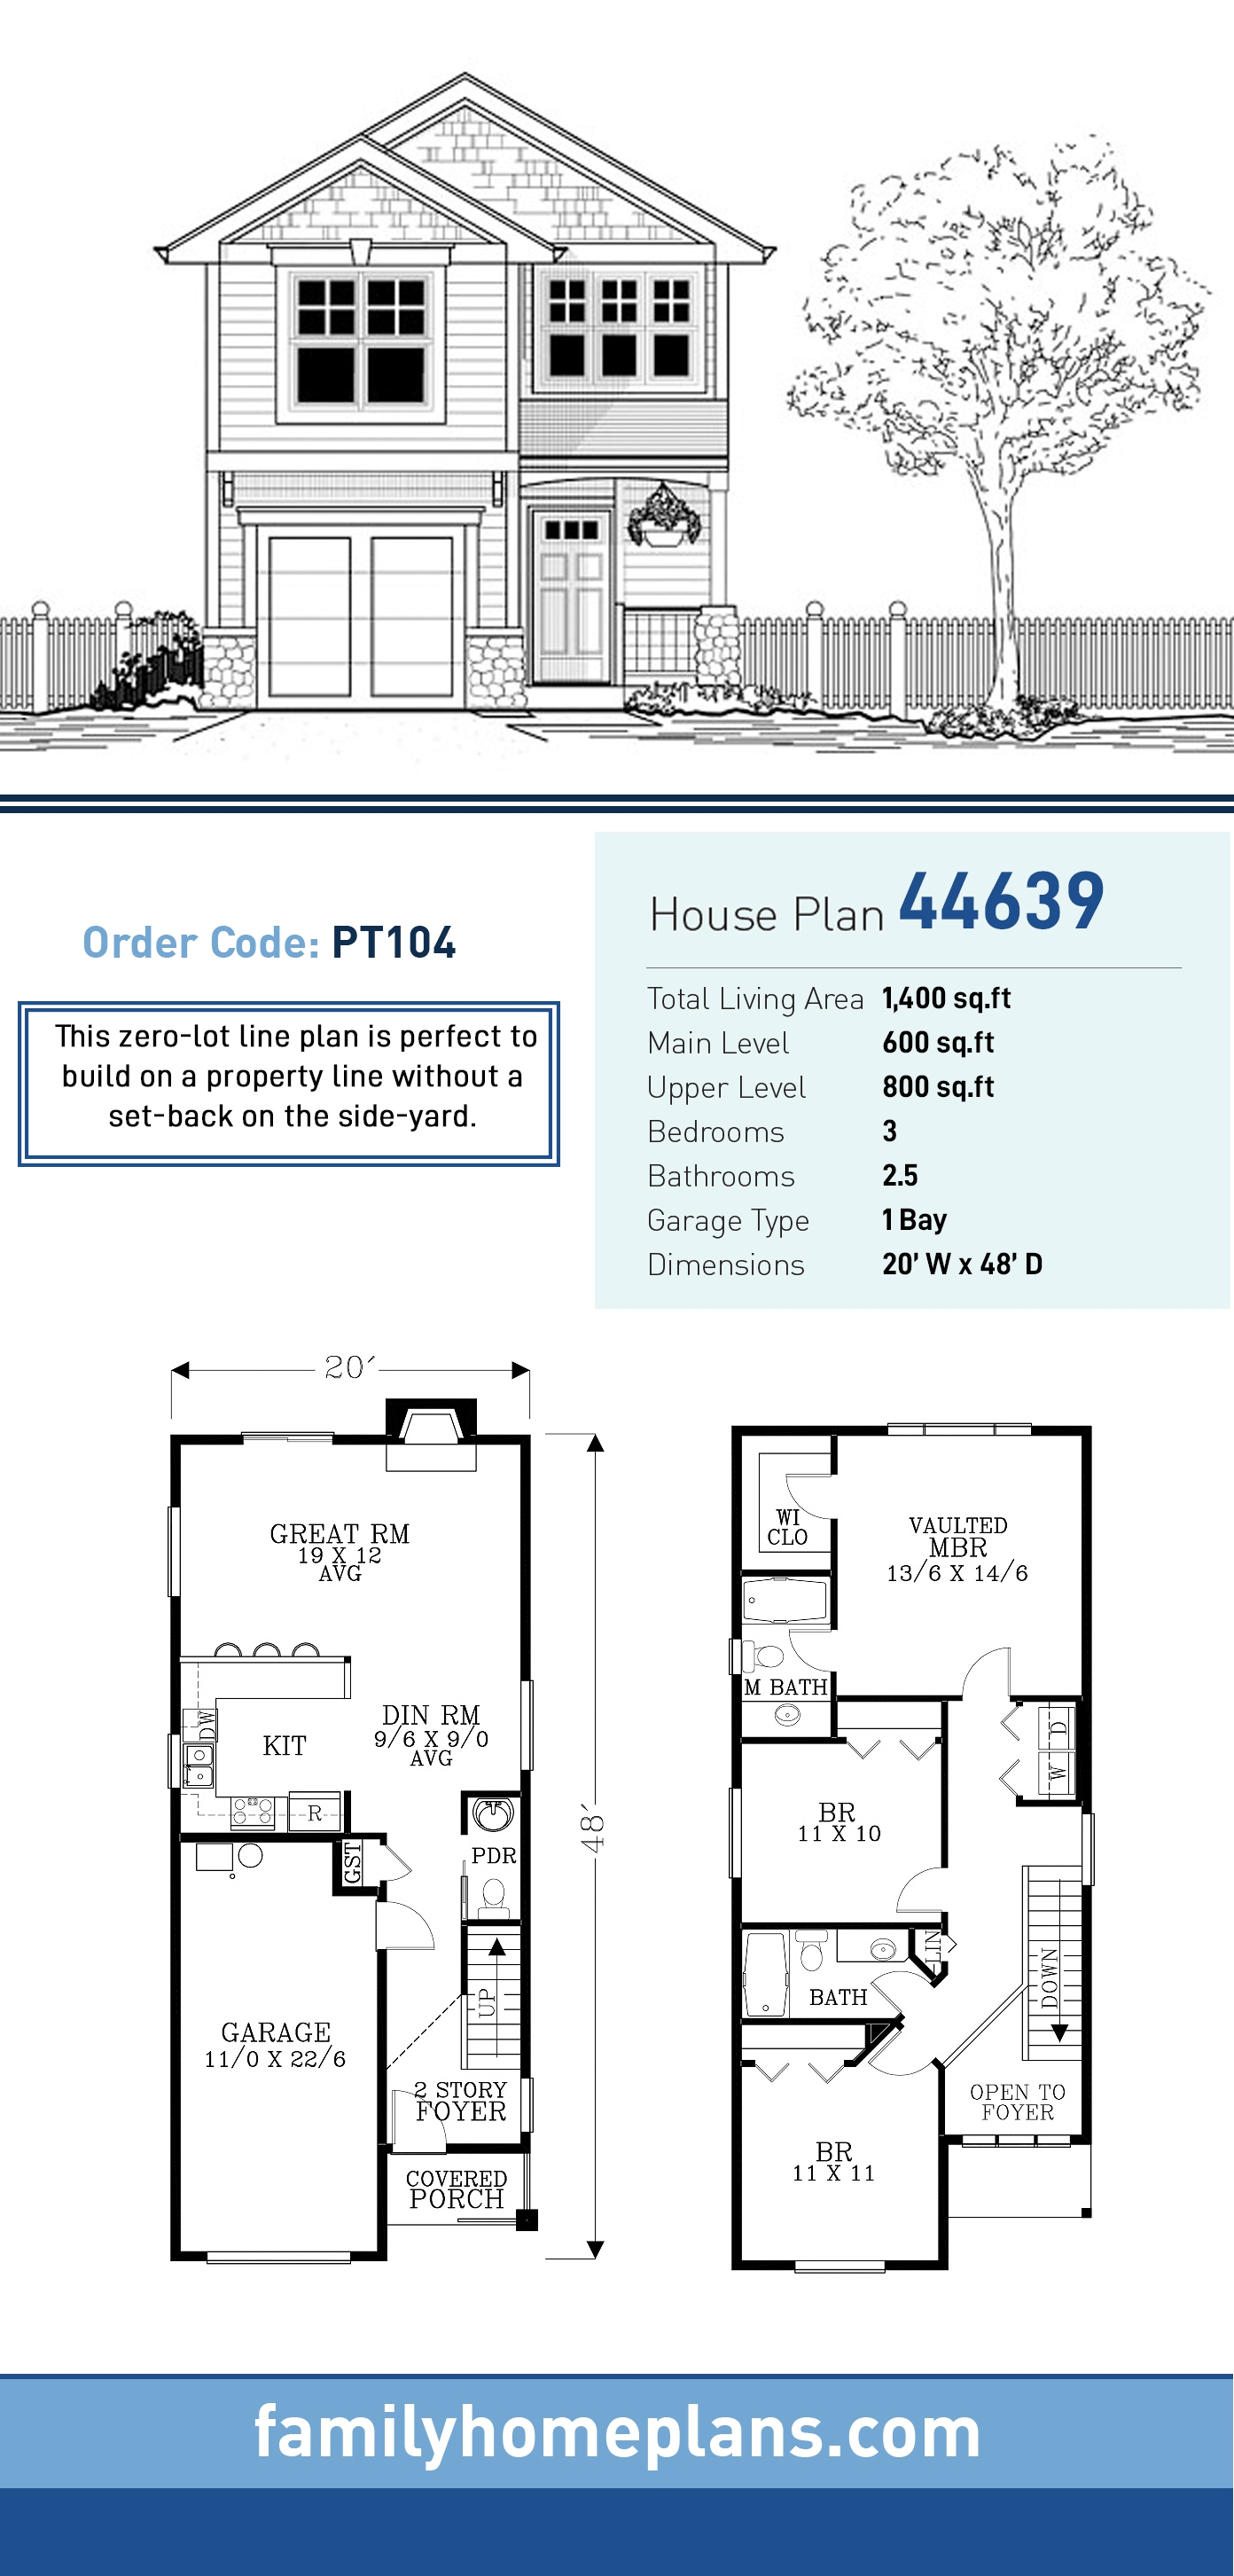 Craftsman, Traditional House Plan 44639 with 3 Beds, 3 Baths, 1 Car Garage